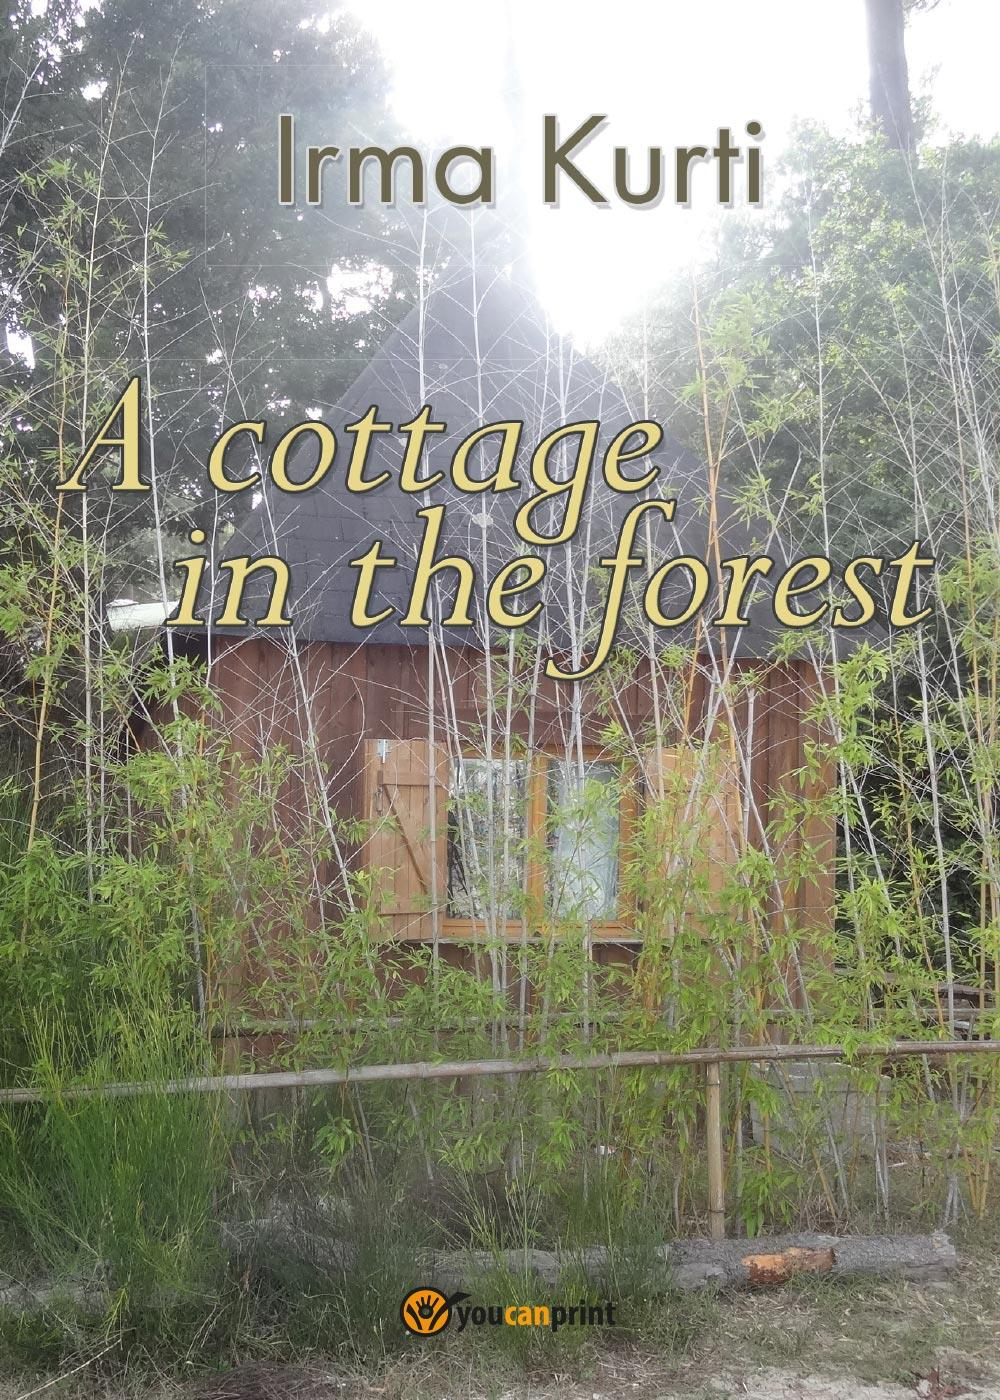 A cottage in the forest